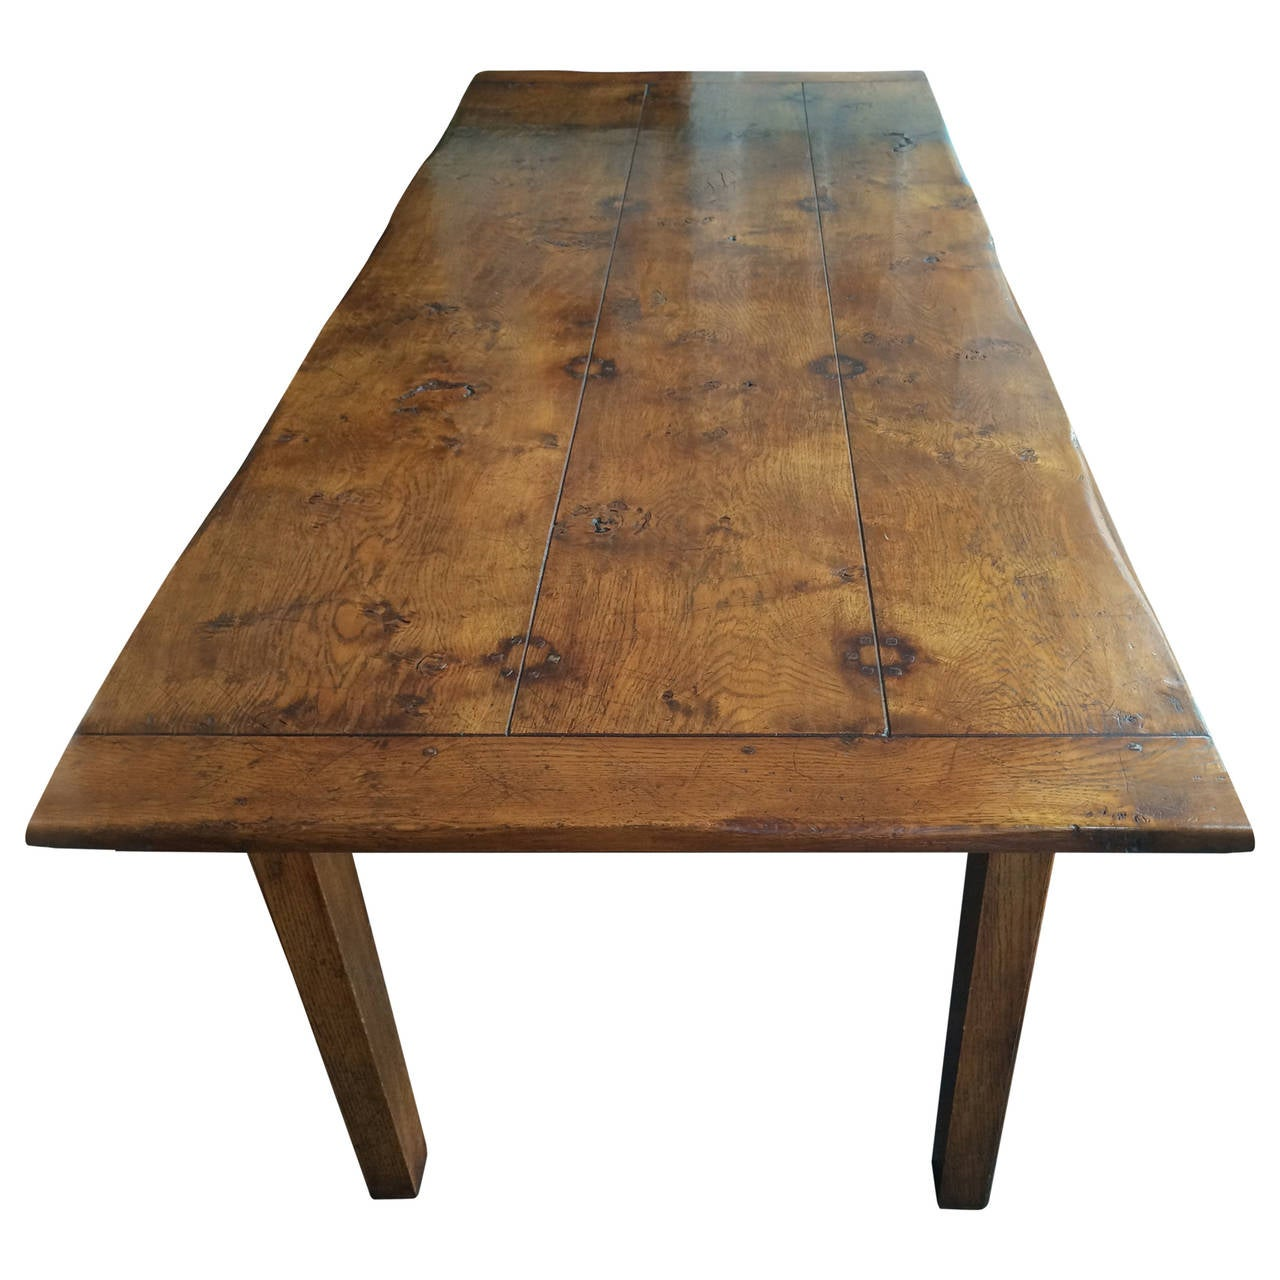 19th Century French Farm Table In Wide Plank Chestnut Wood